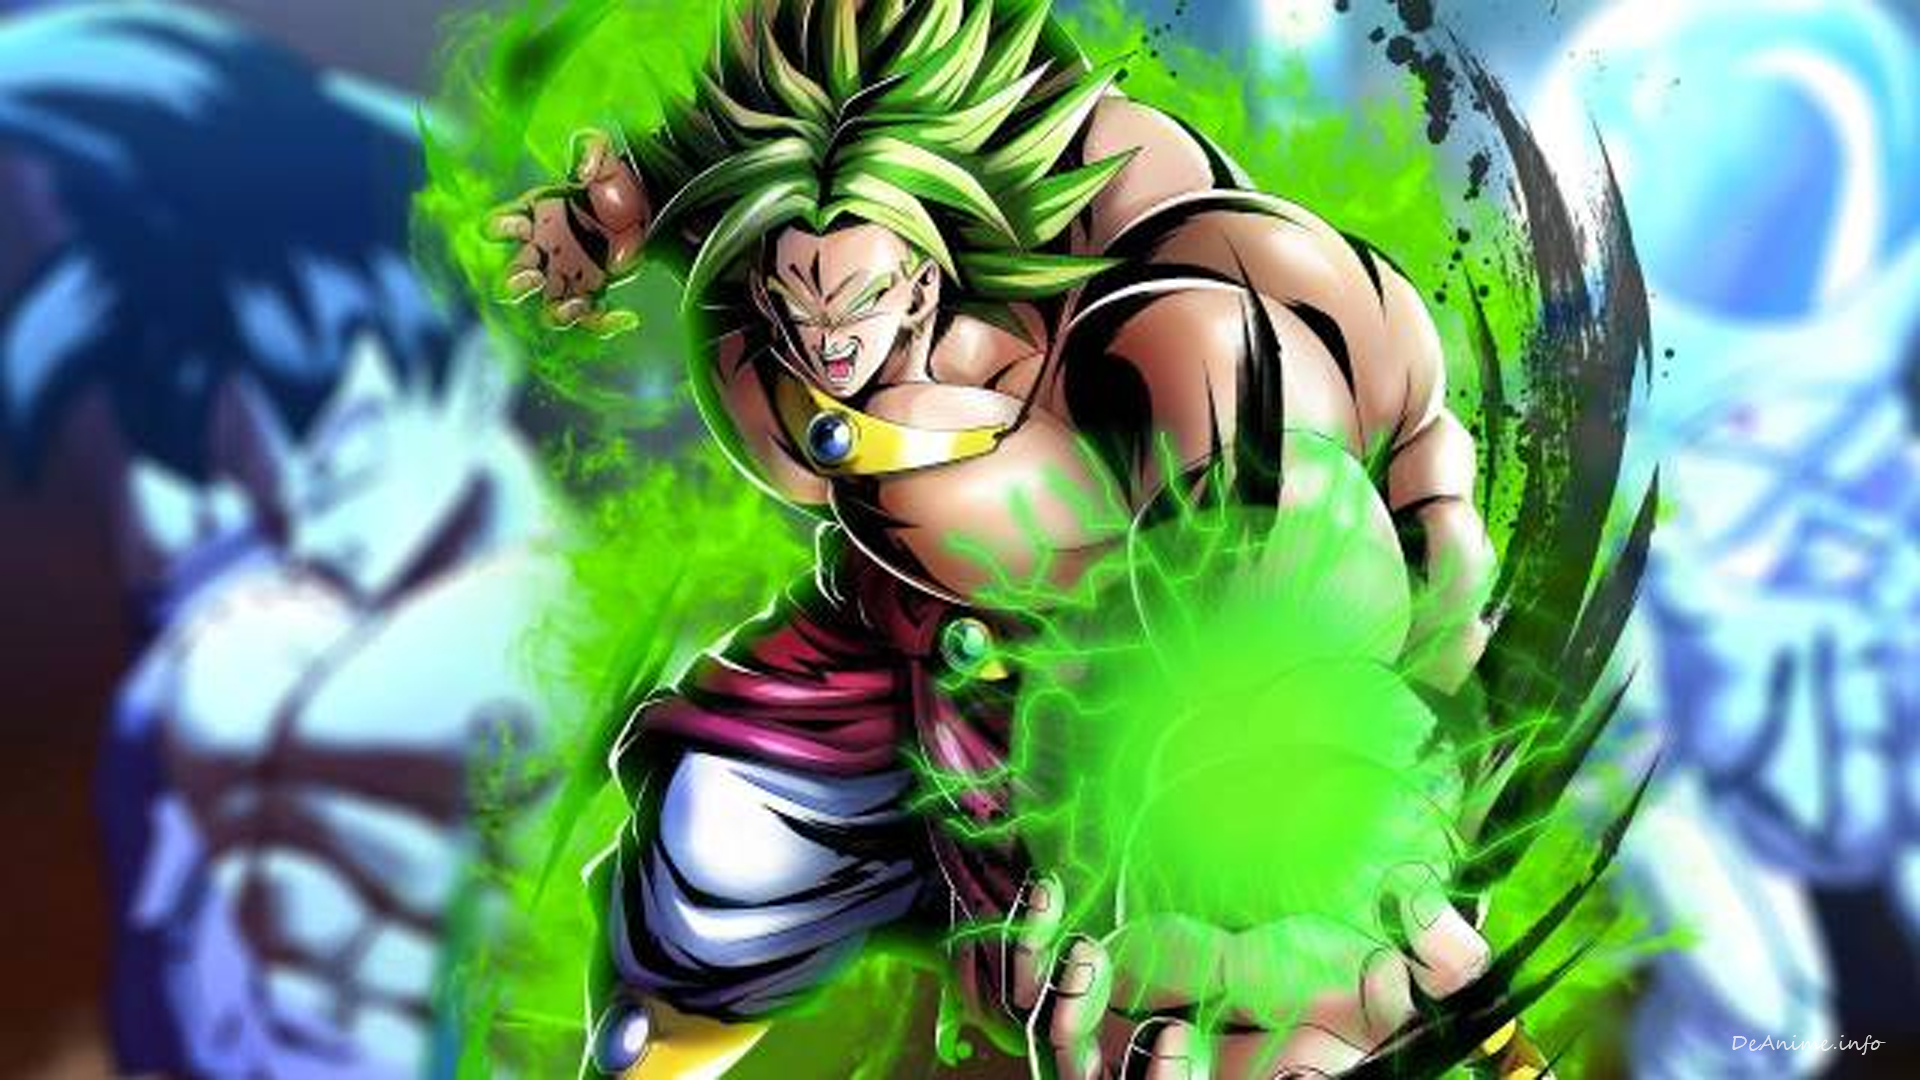 Wallpapers De Escritorio Dragon Ball Deanime